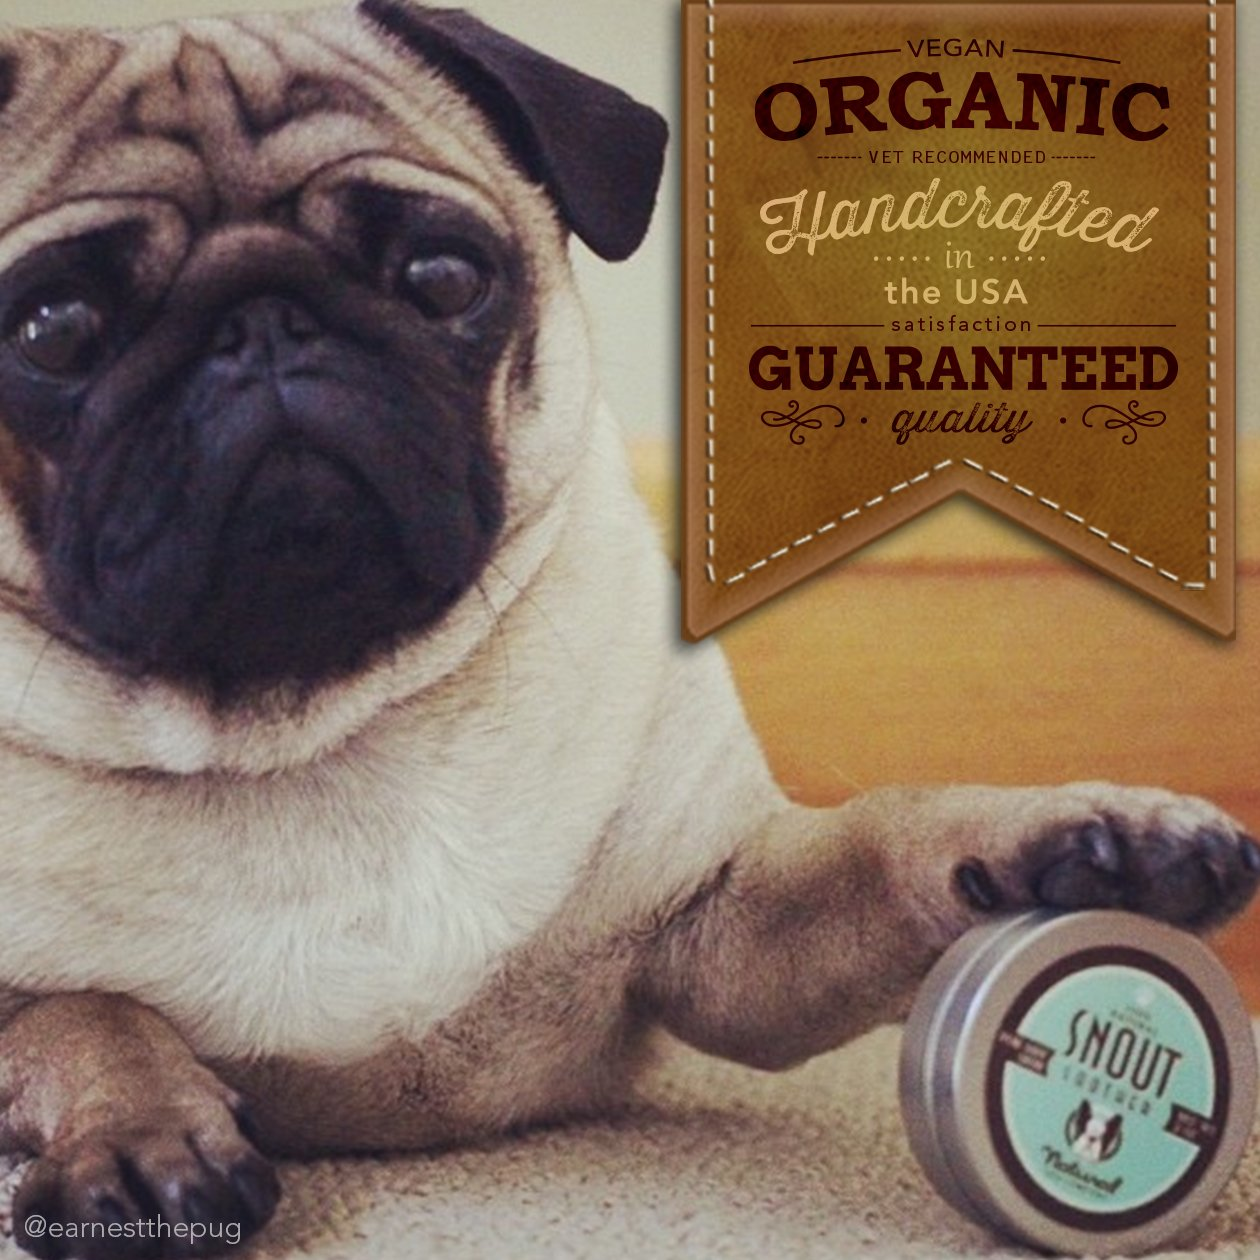 NaturalDog.com SNOUT SOOTHER | Heals Dry, Chapped, Cracked, and Crusty Dog Noses | 2oz Tin + 0.15oz Stick by NaturalDog.com (Image #3)